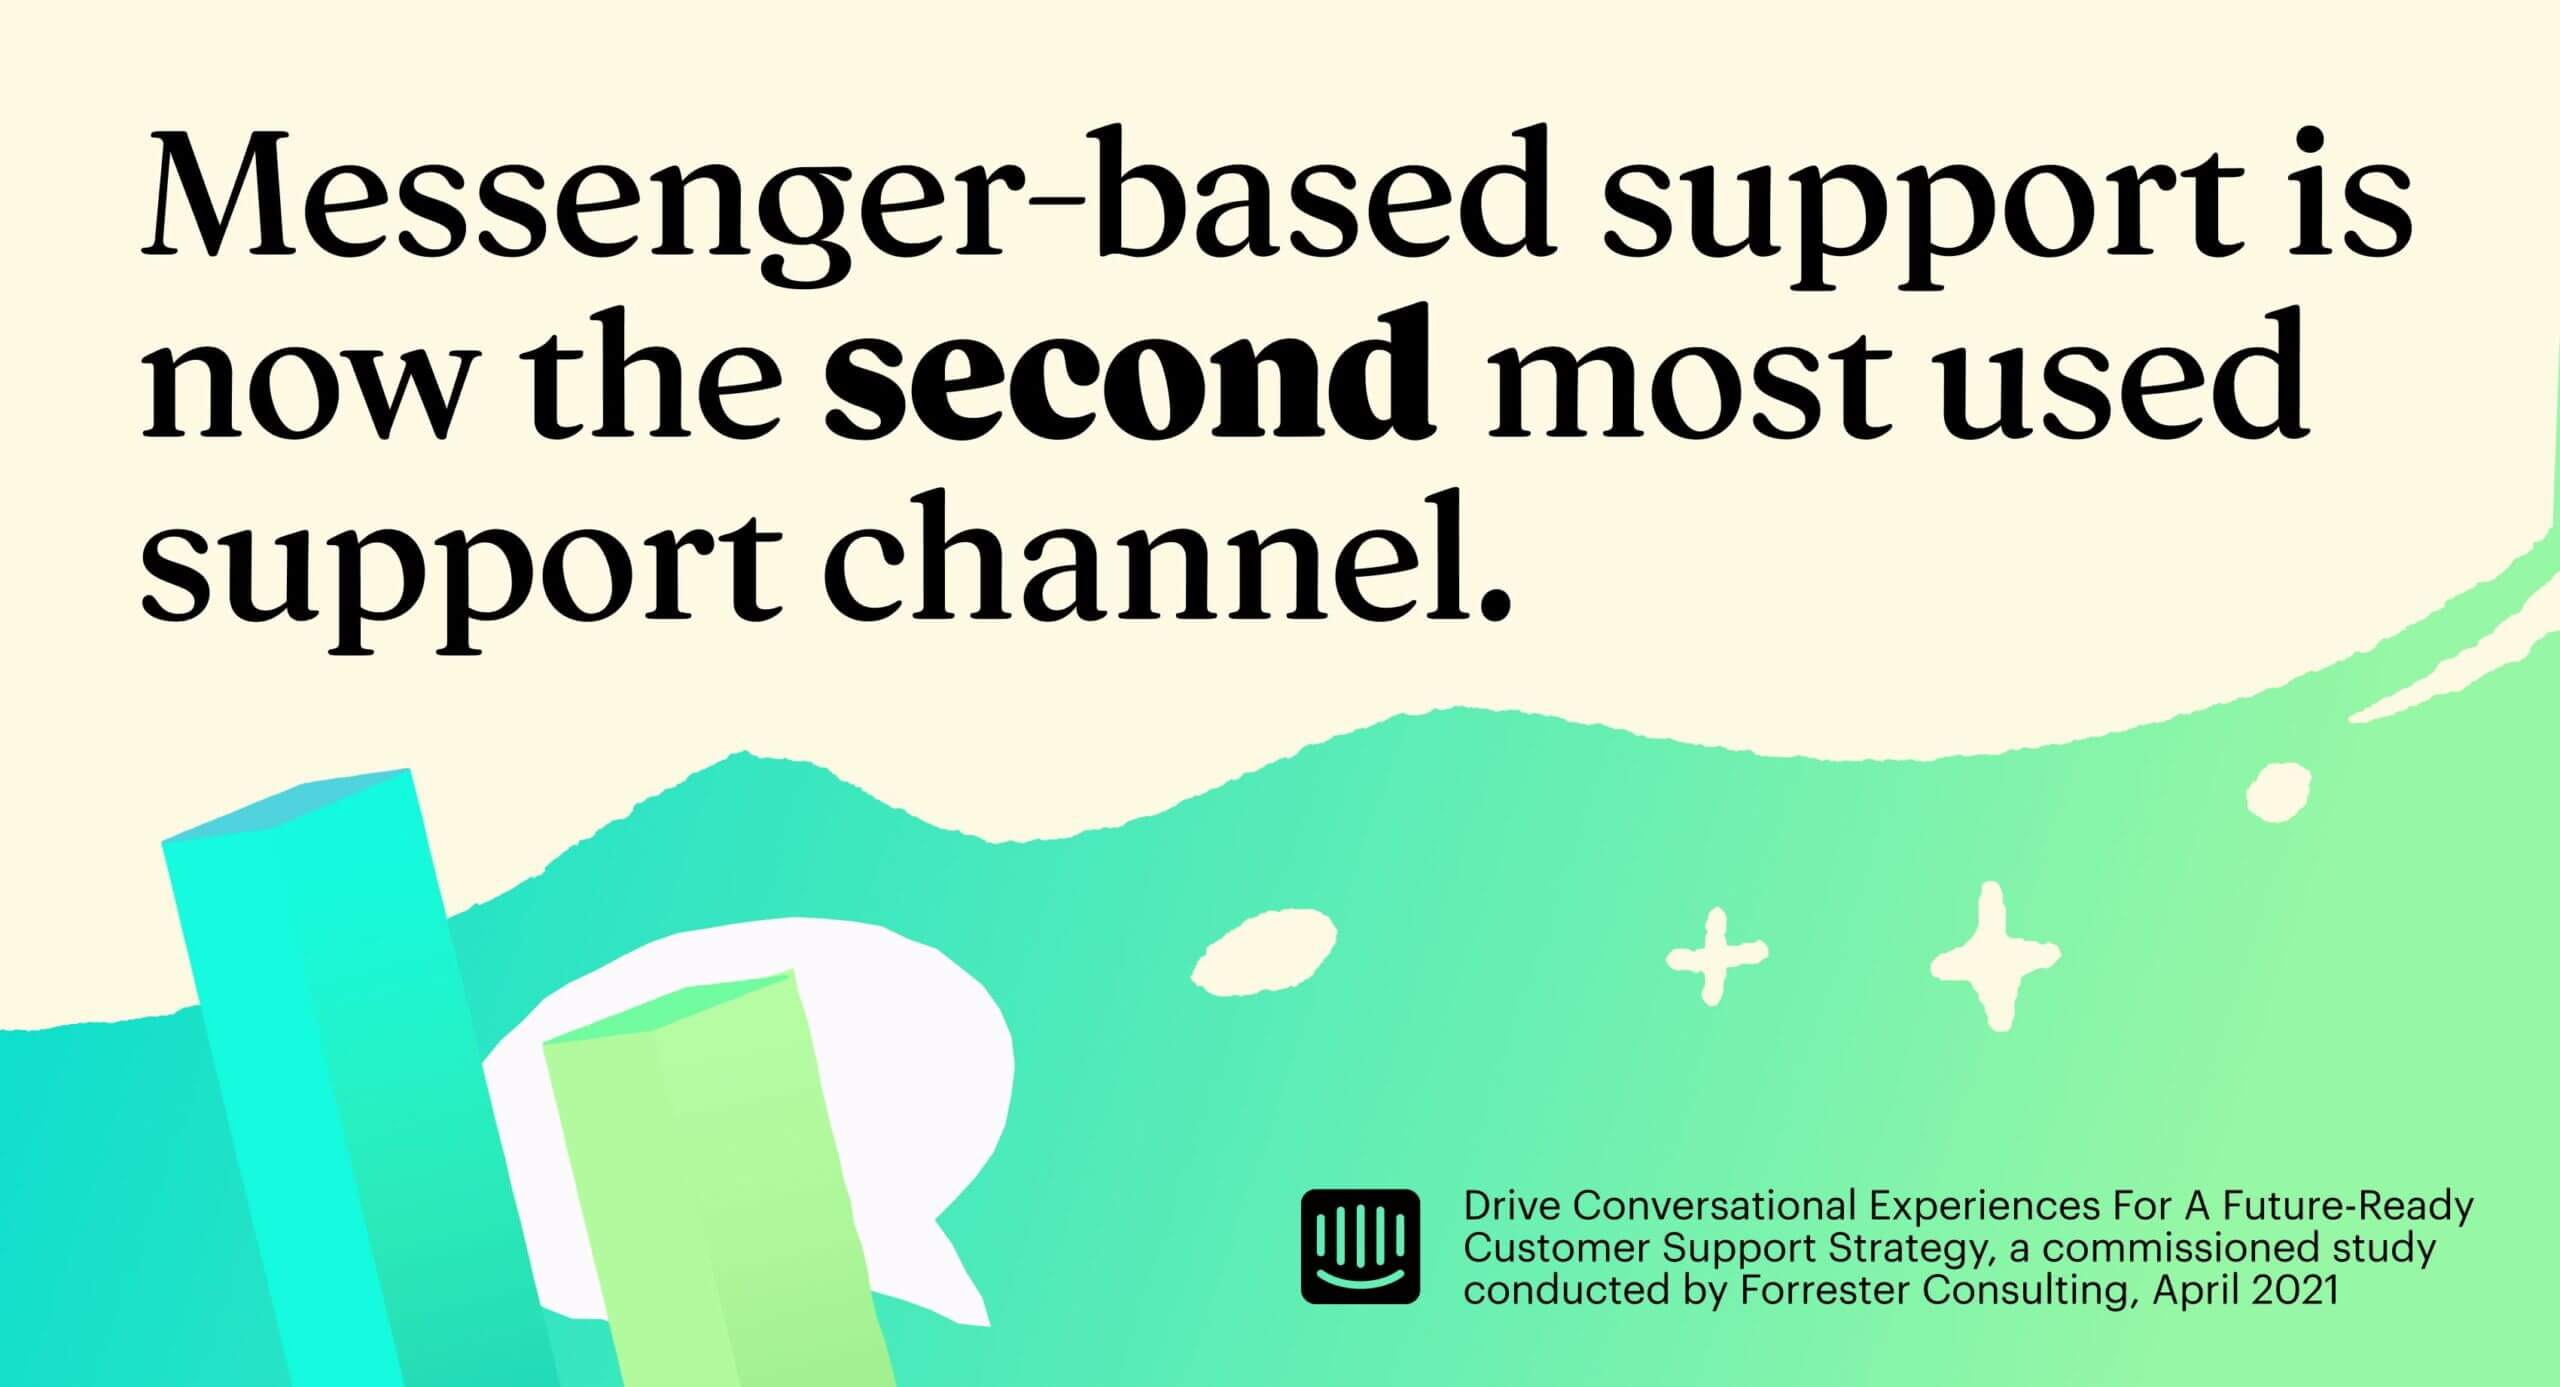 Messenger-based support is now the second most used support channel.